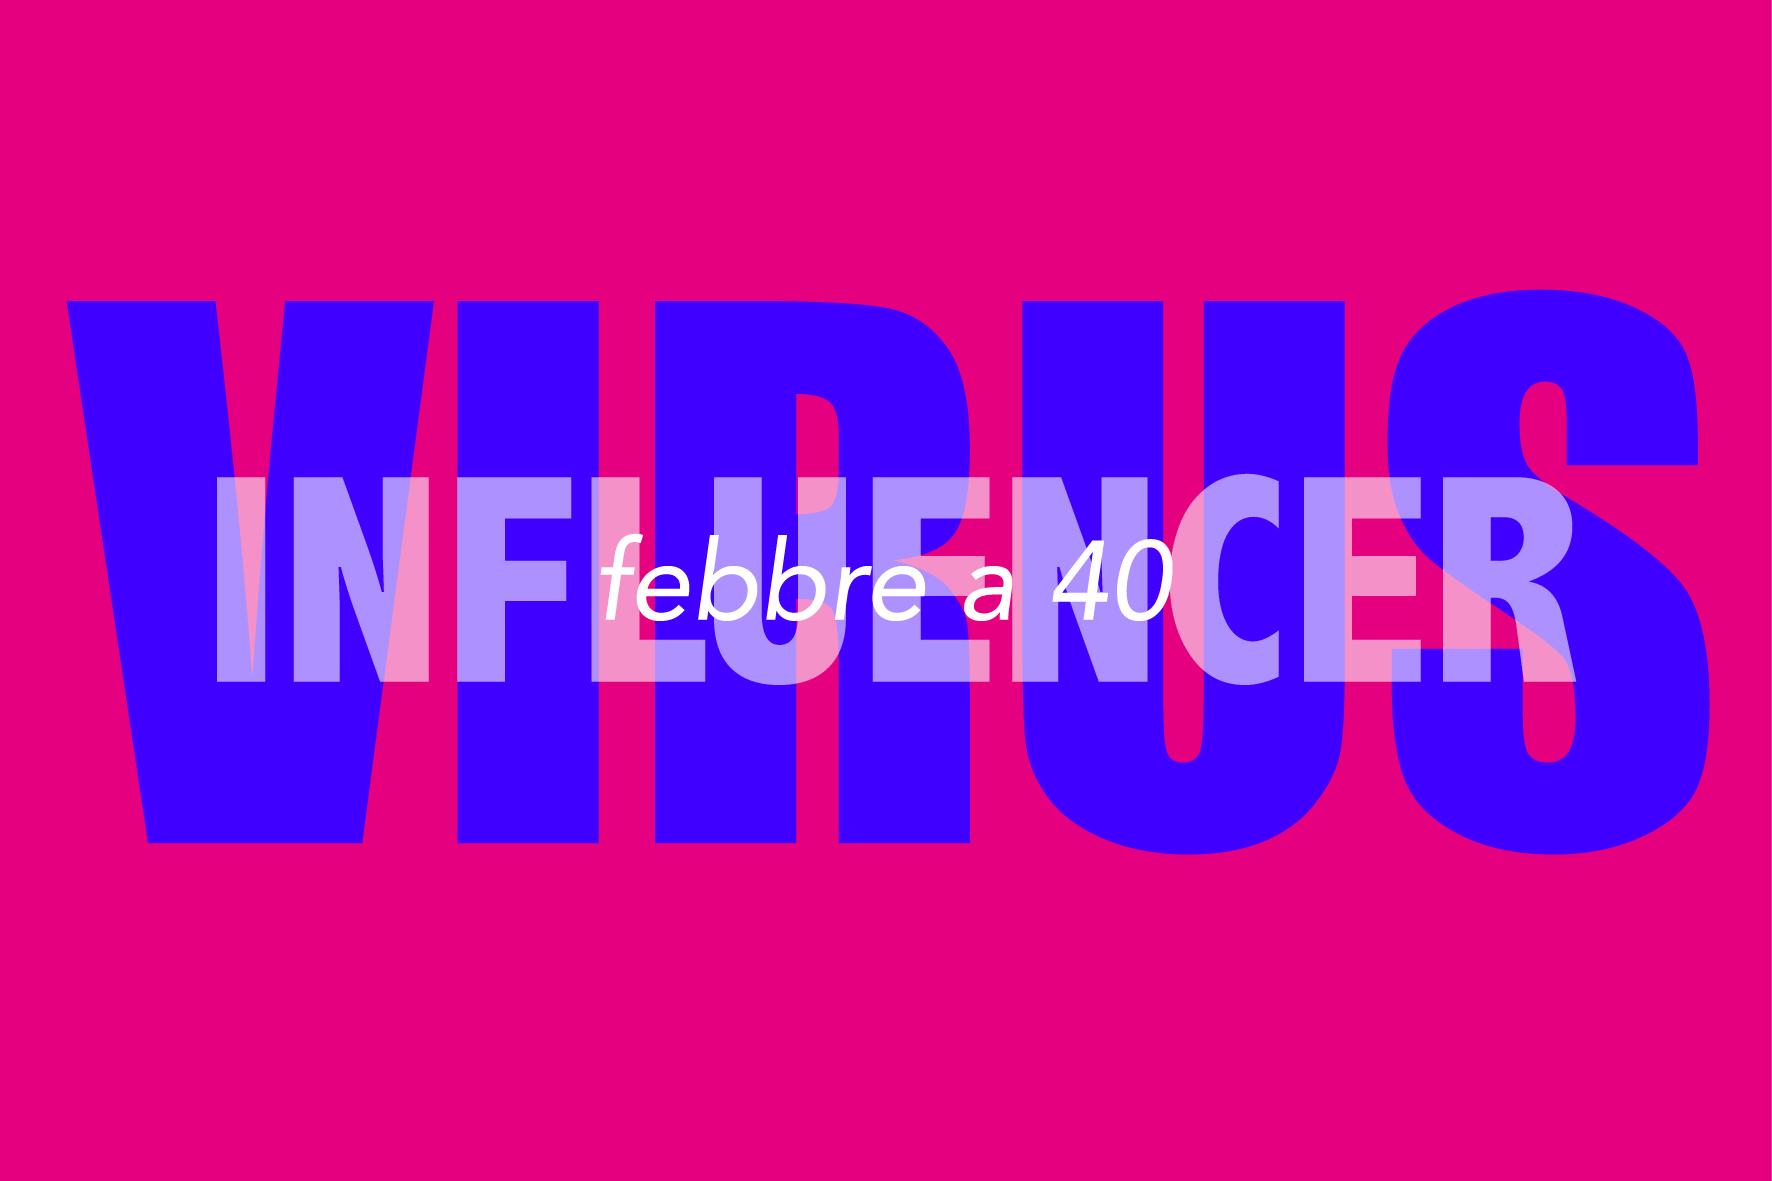 influencer-febbre-virus